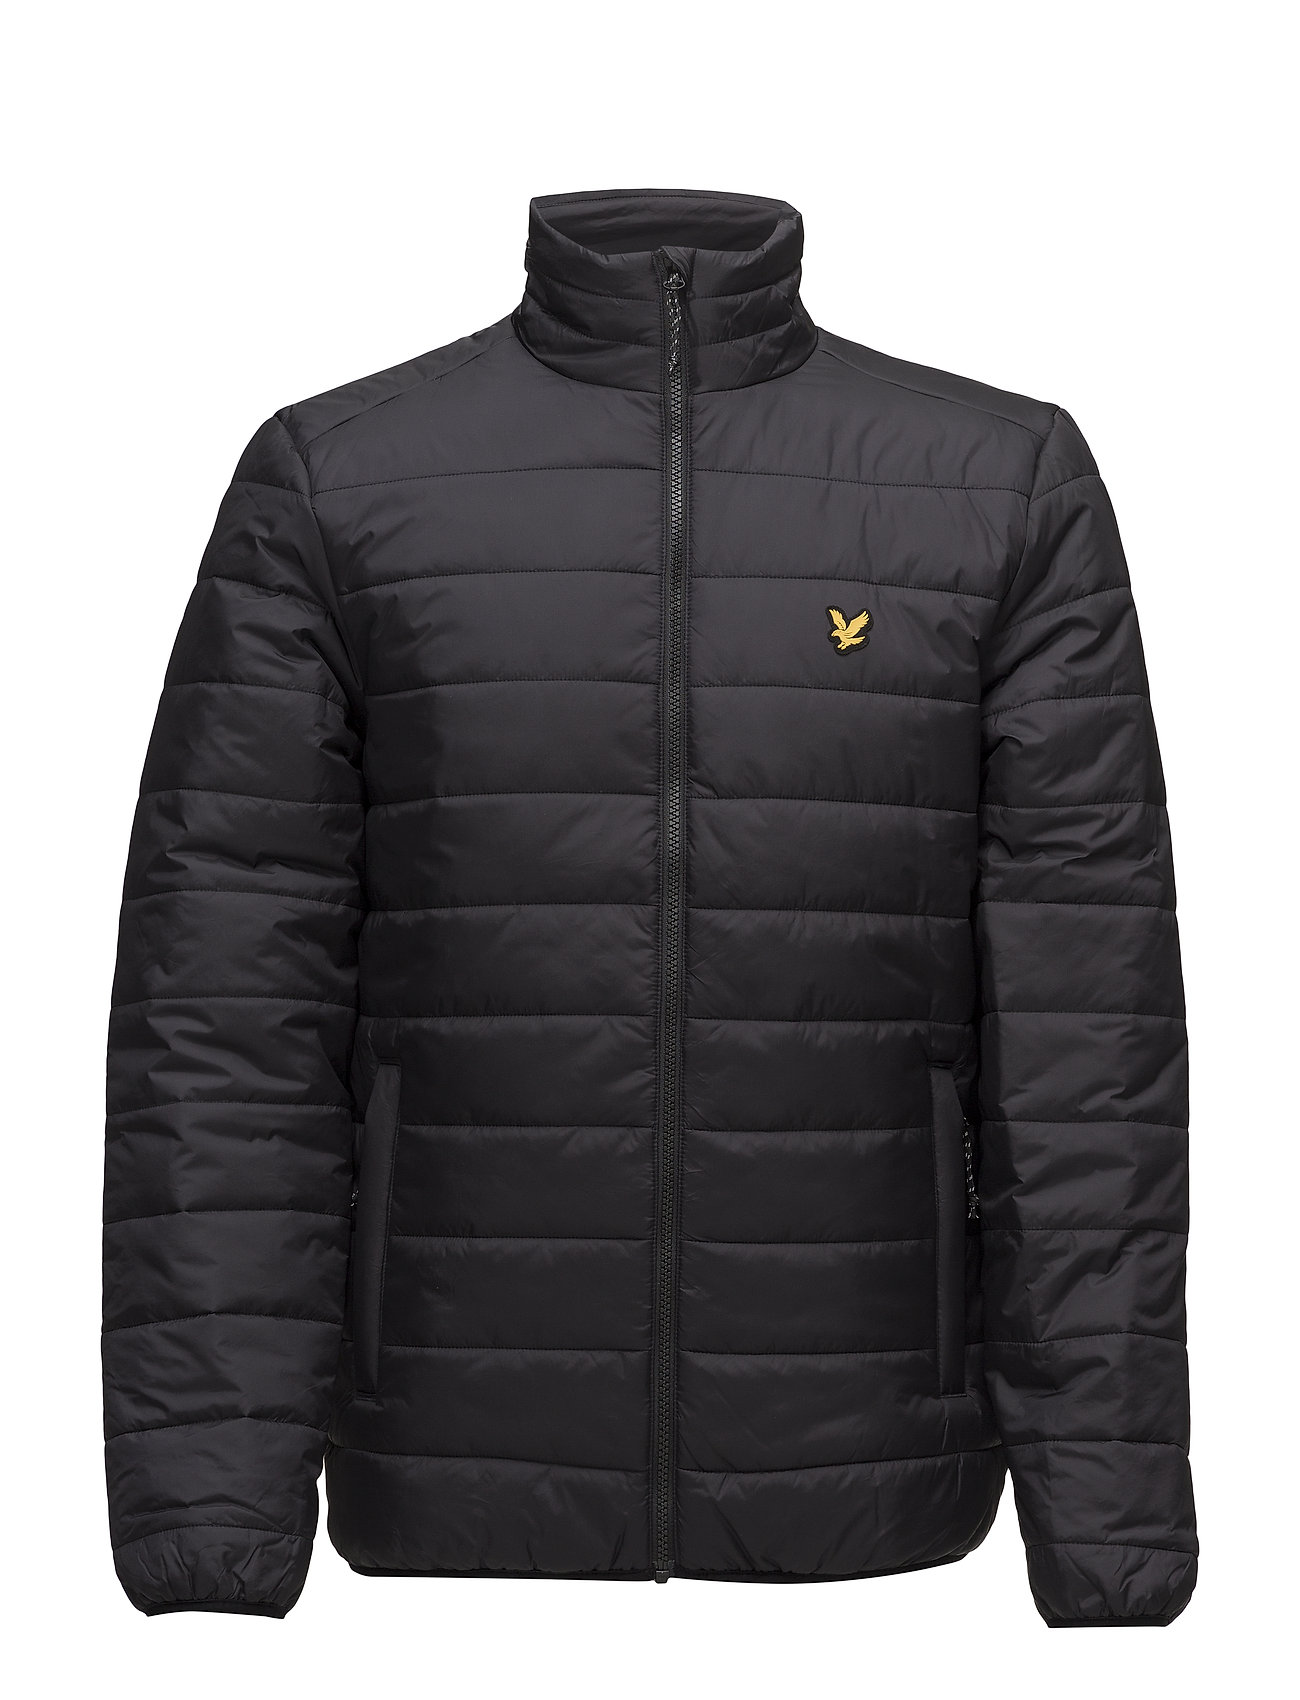 Image of Lloyd Jacket : Insulated Zip Through Jacket (3056667515)